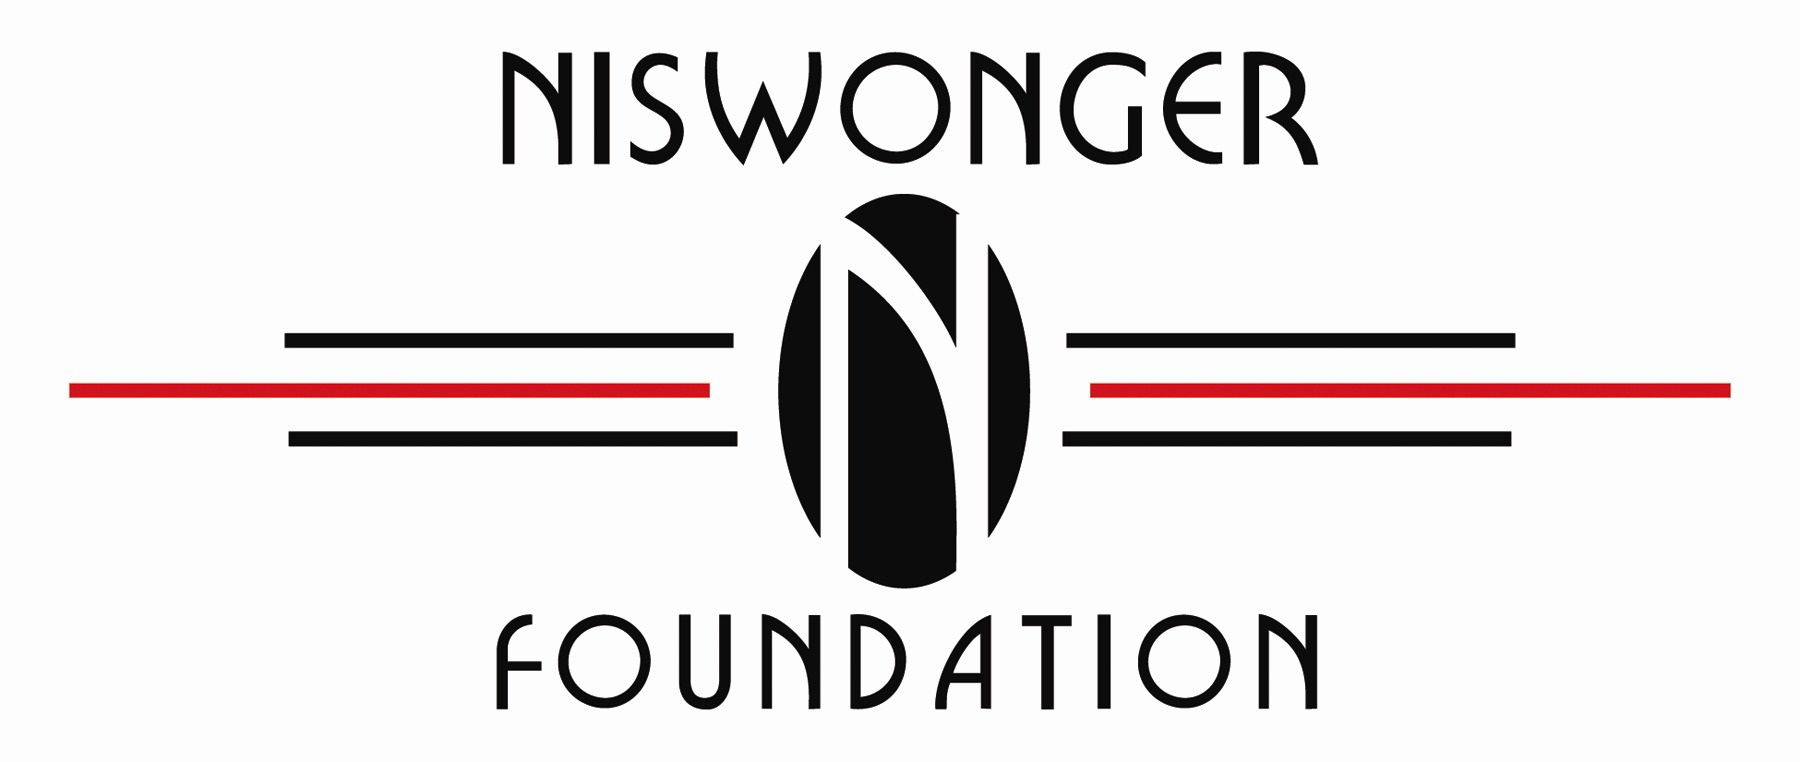 Niswonger Foundation Logo